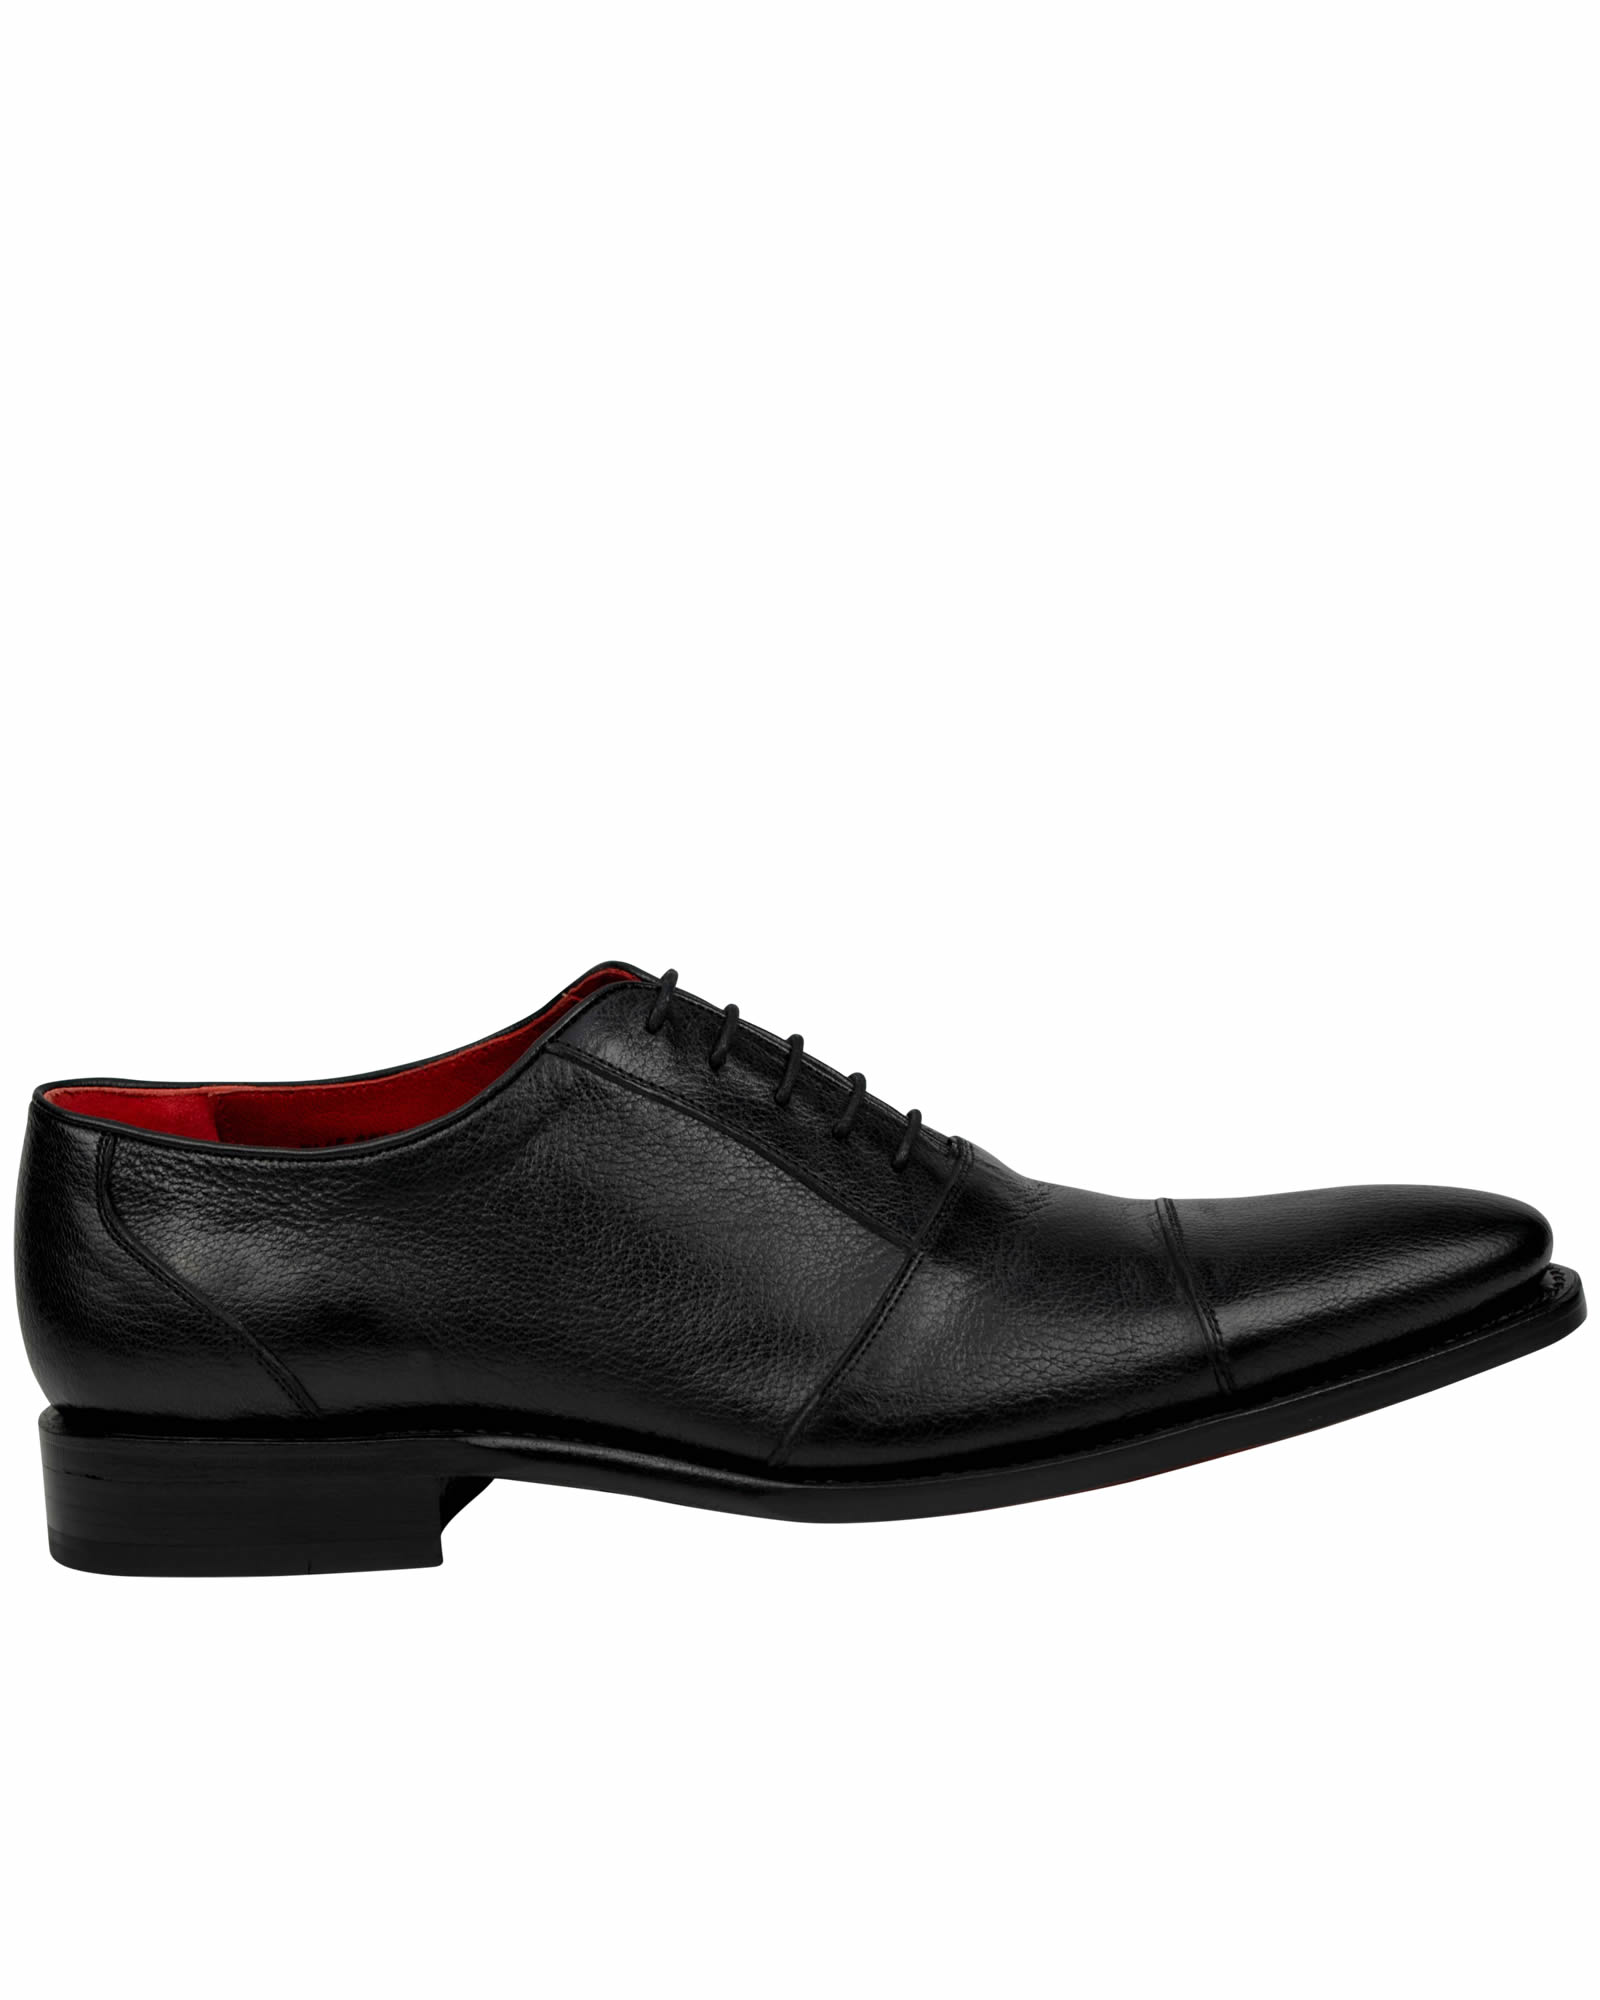 Goodyear Welted Lama skin Black Dress shoes